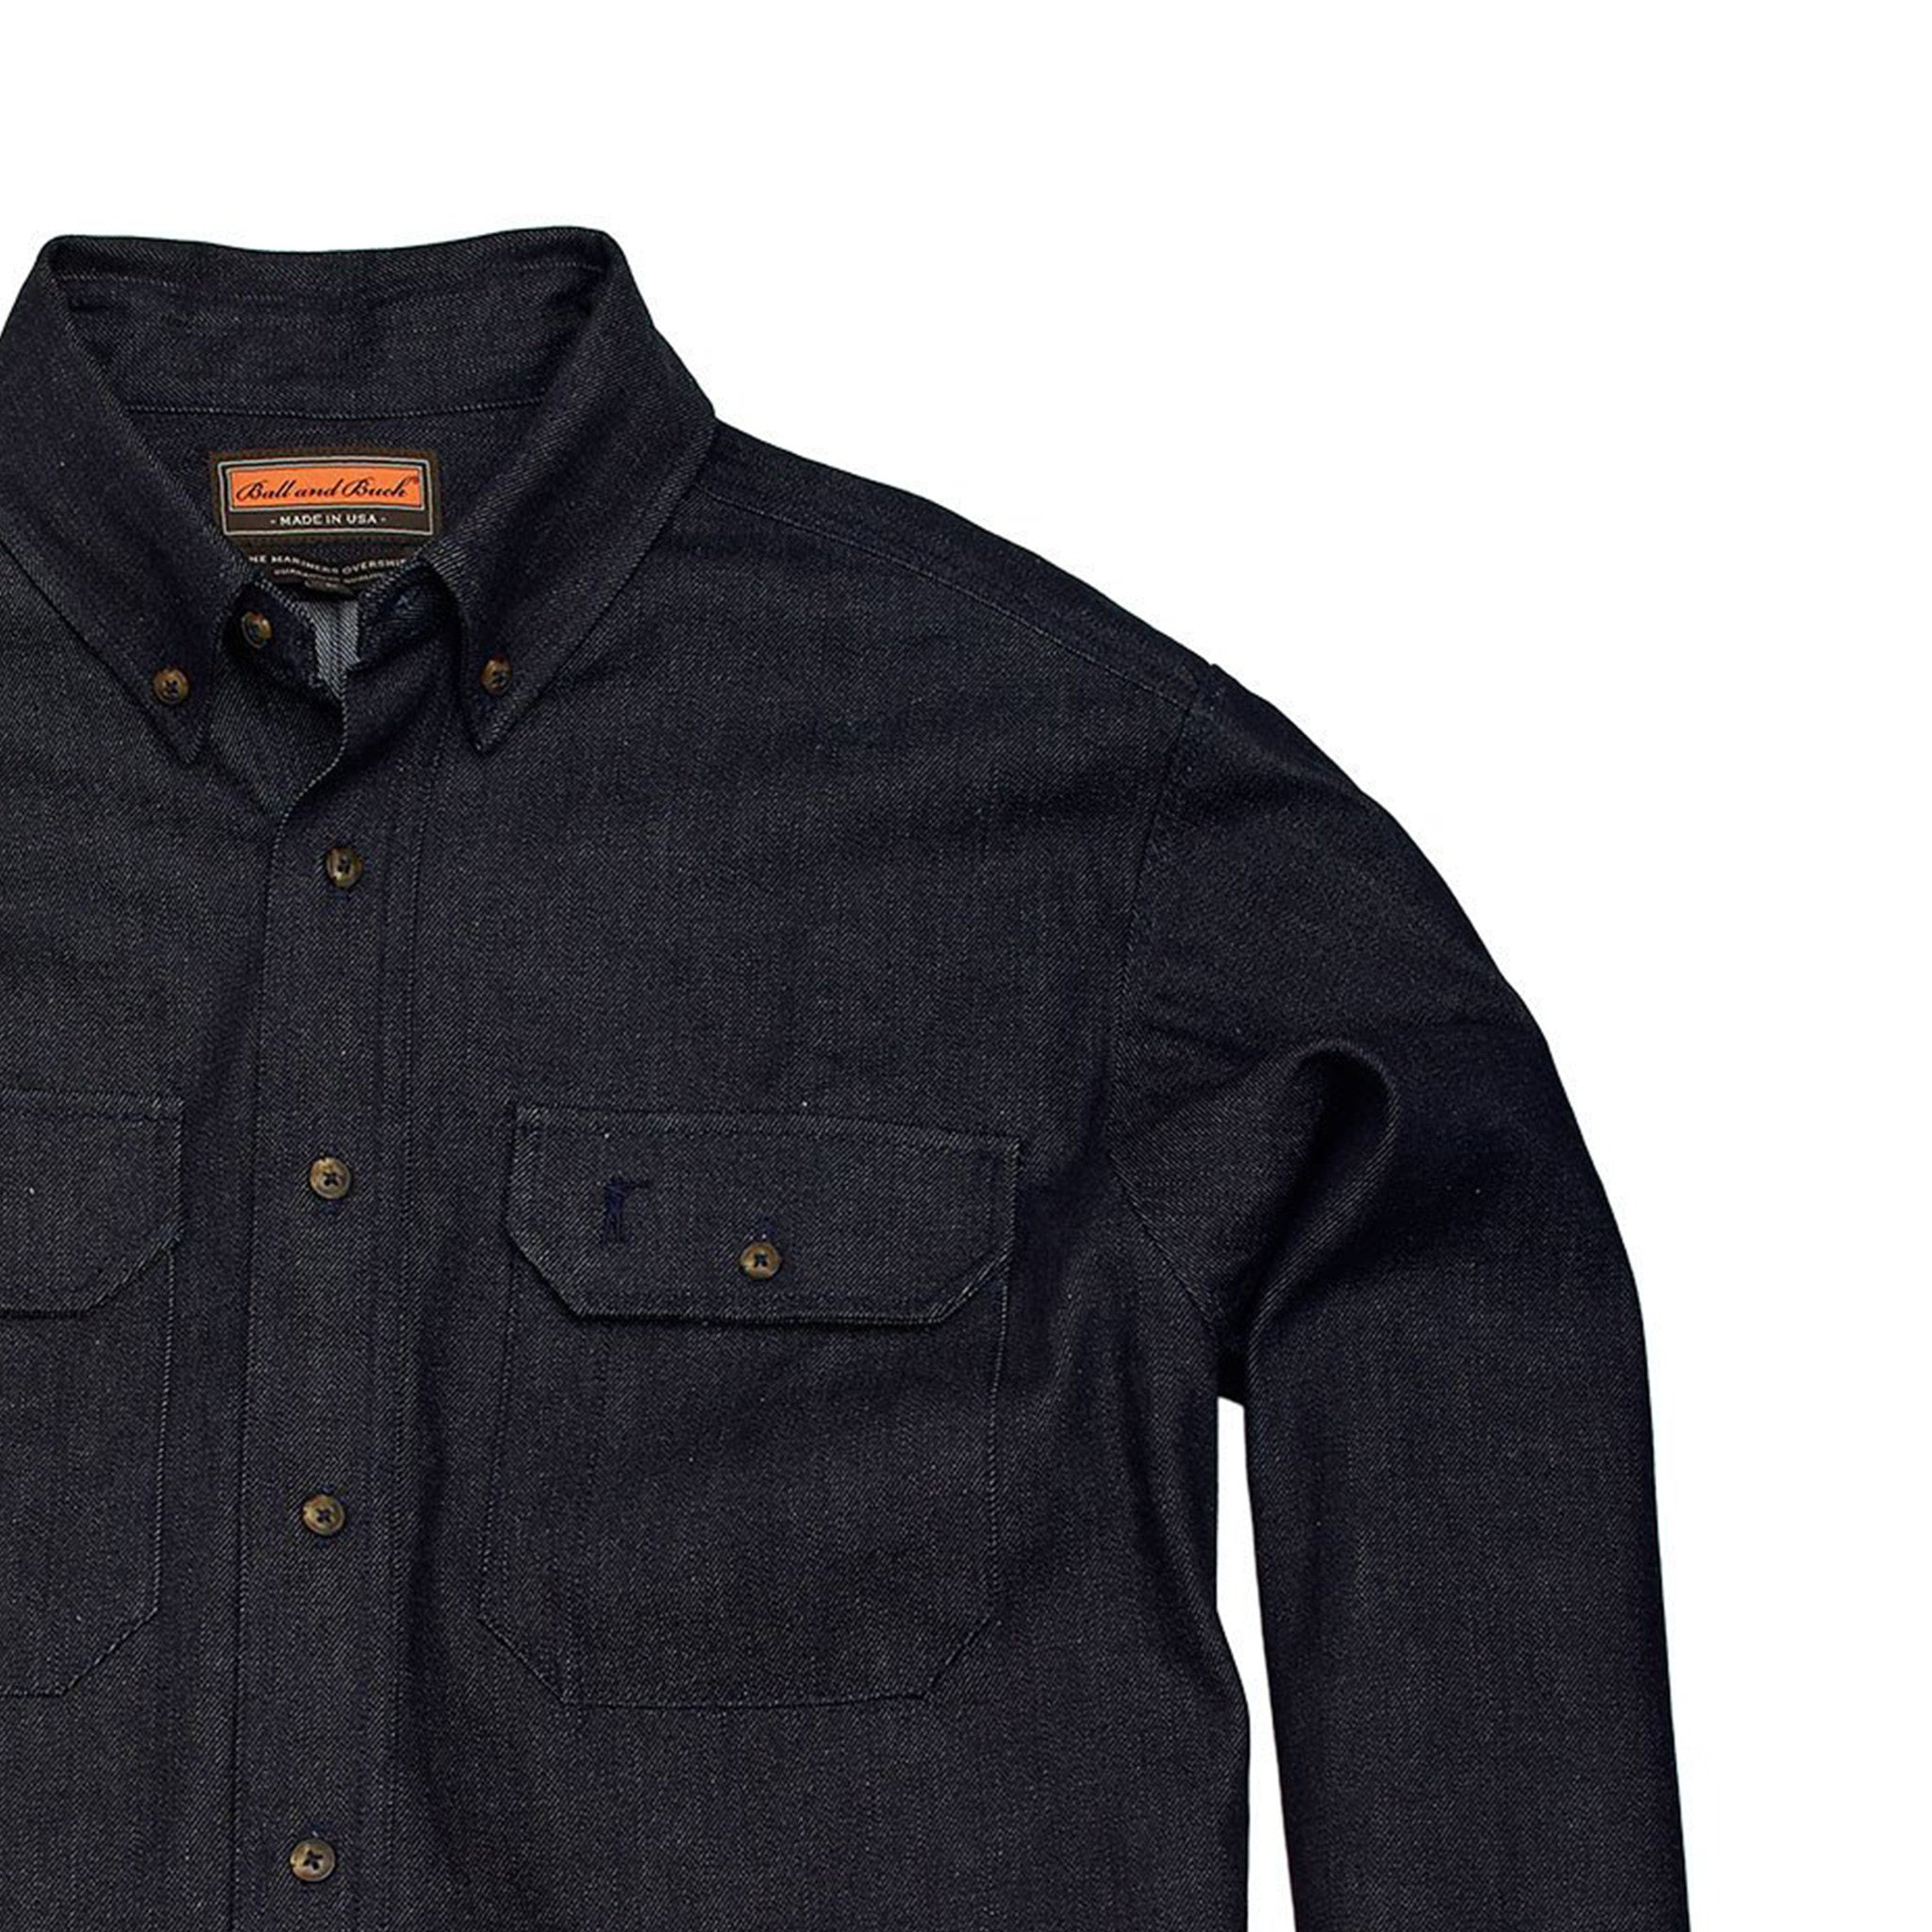 Mariners Overshirt - Distilled Indigo